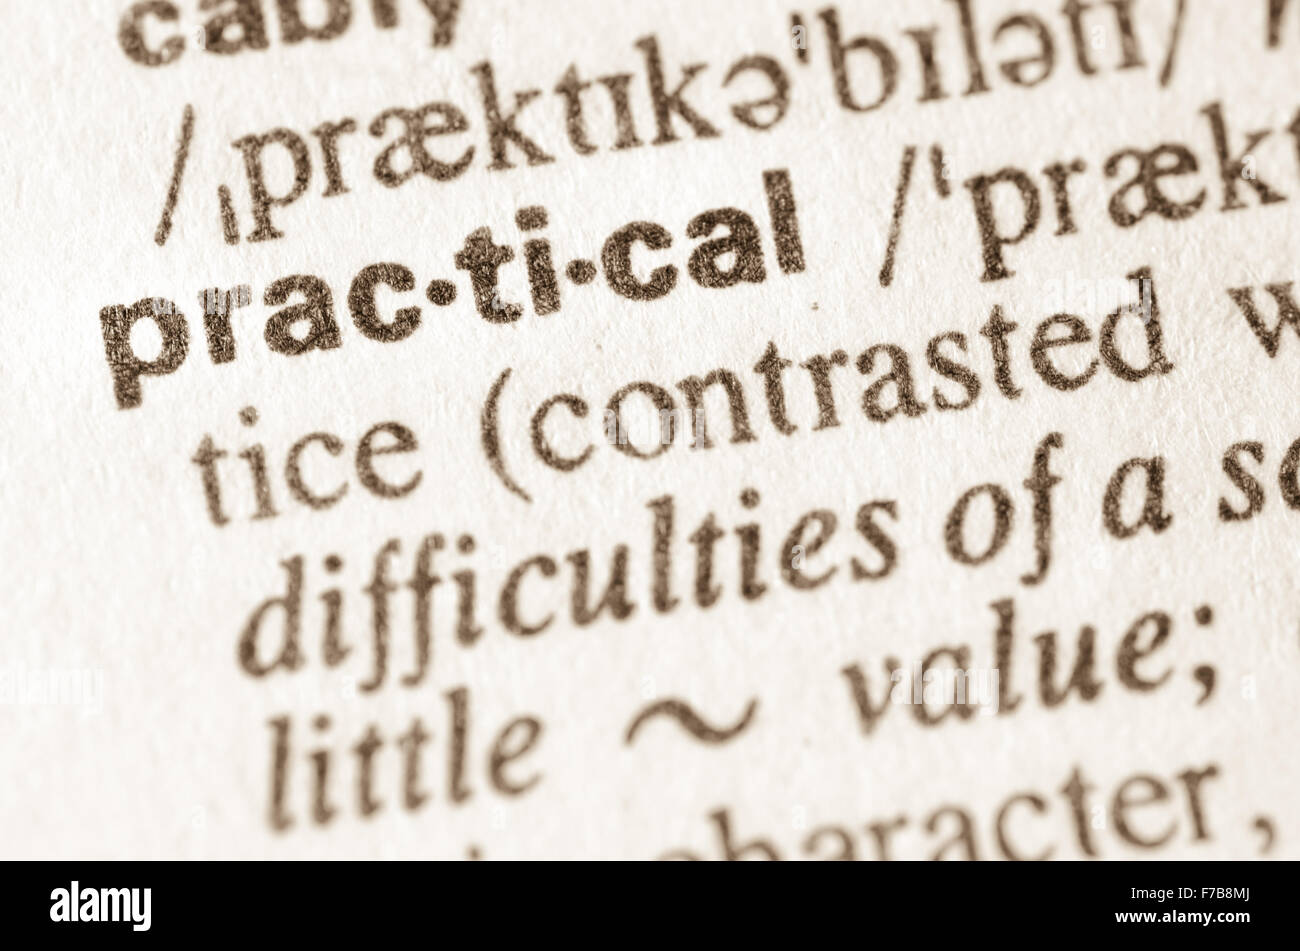 Definition of word practical in dictionary - Stock Image